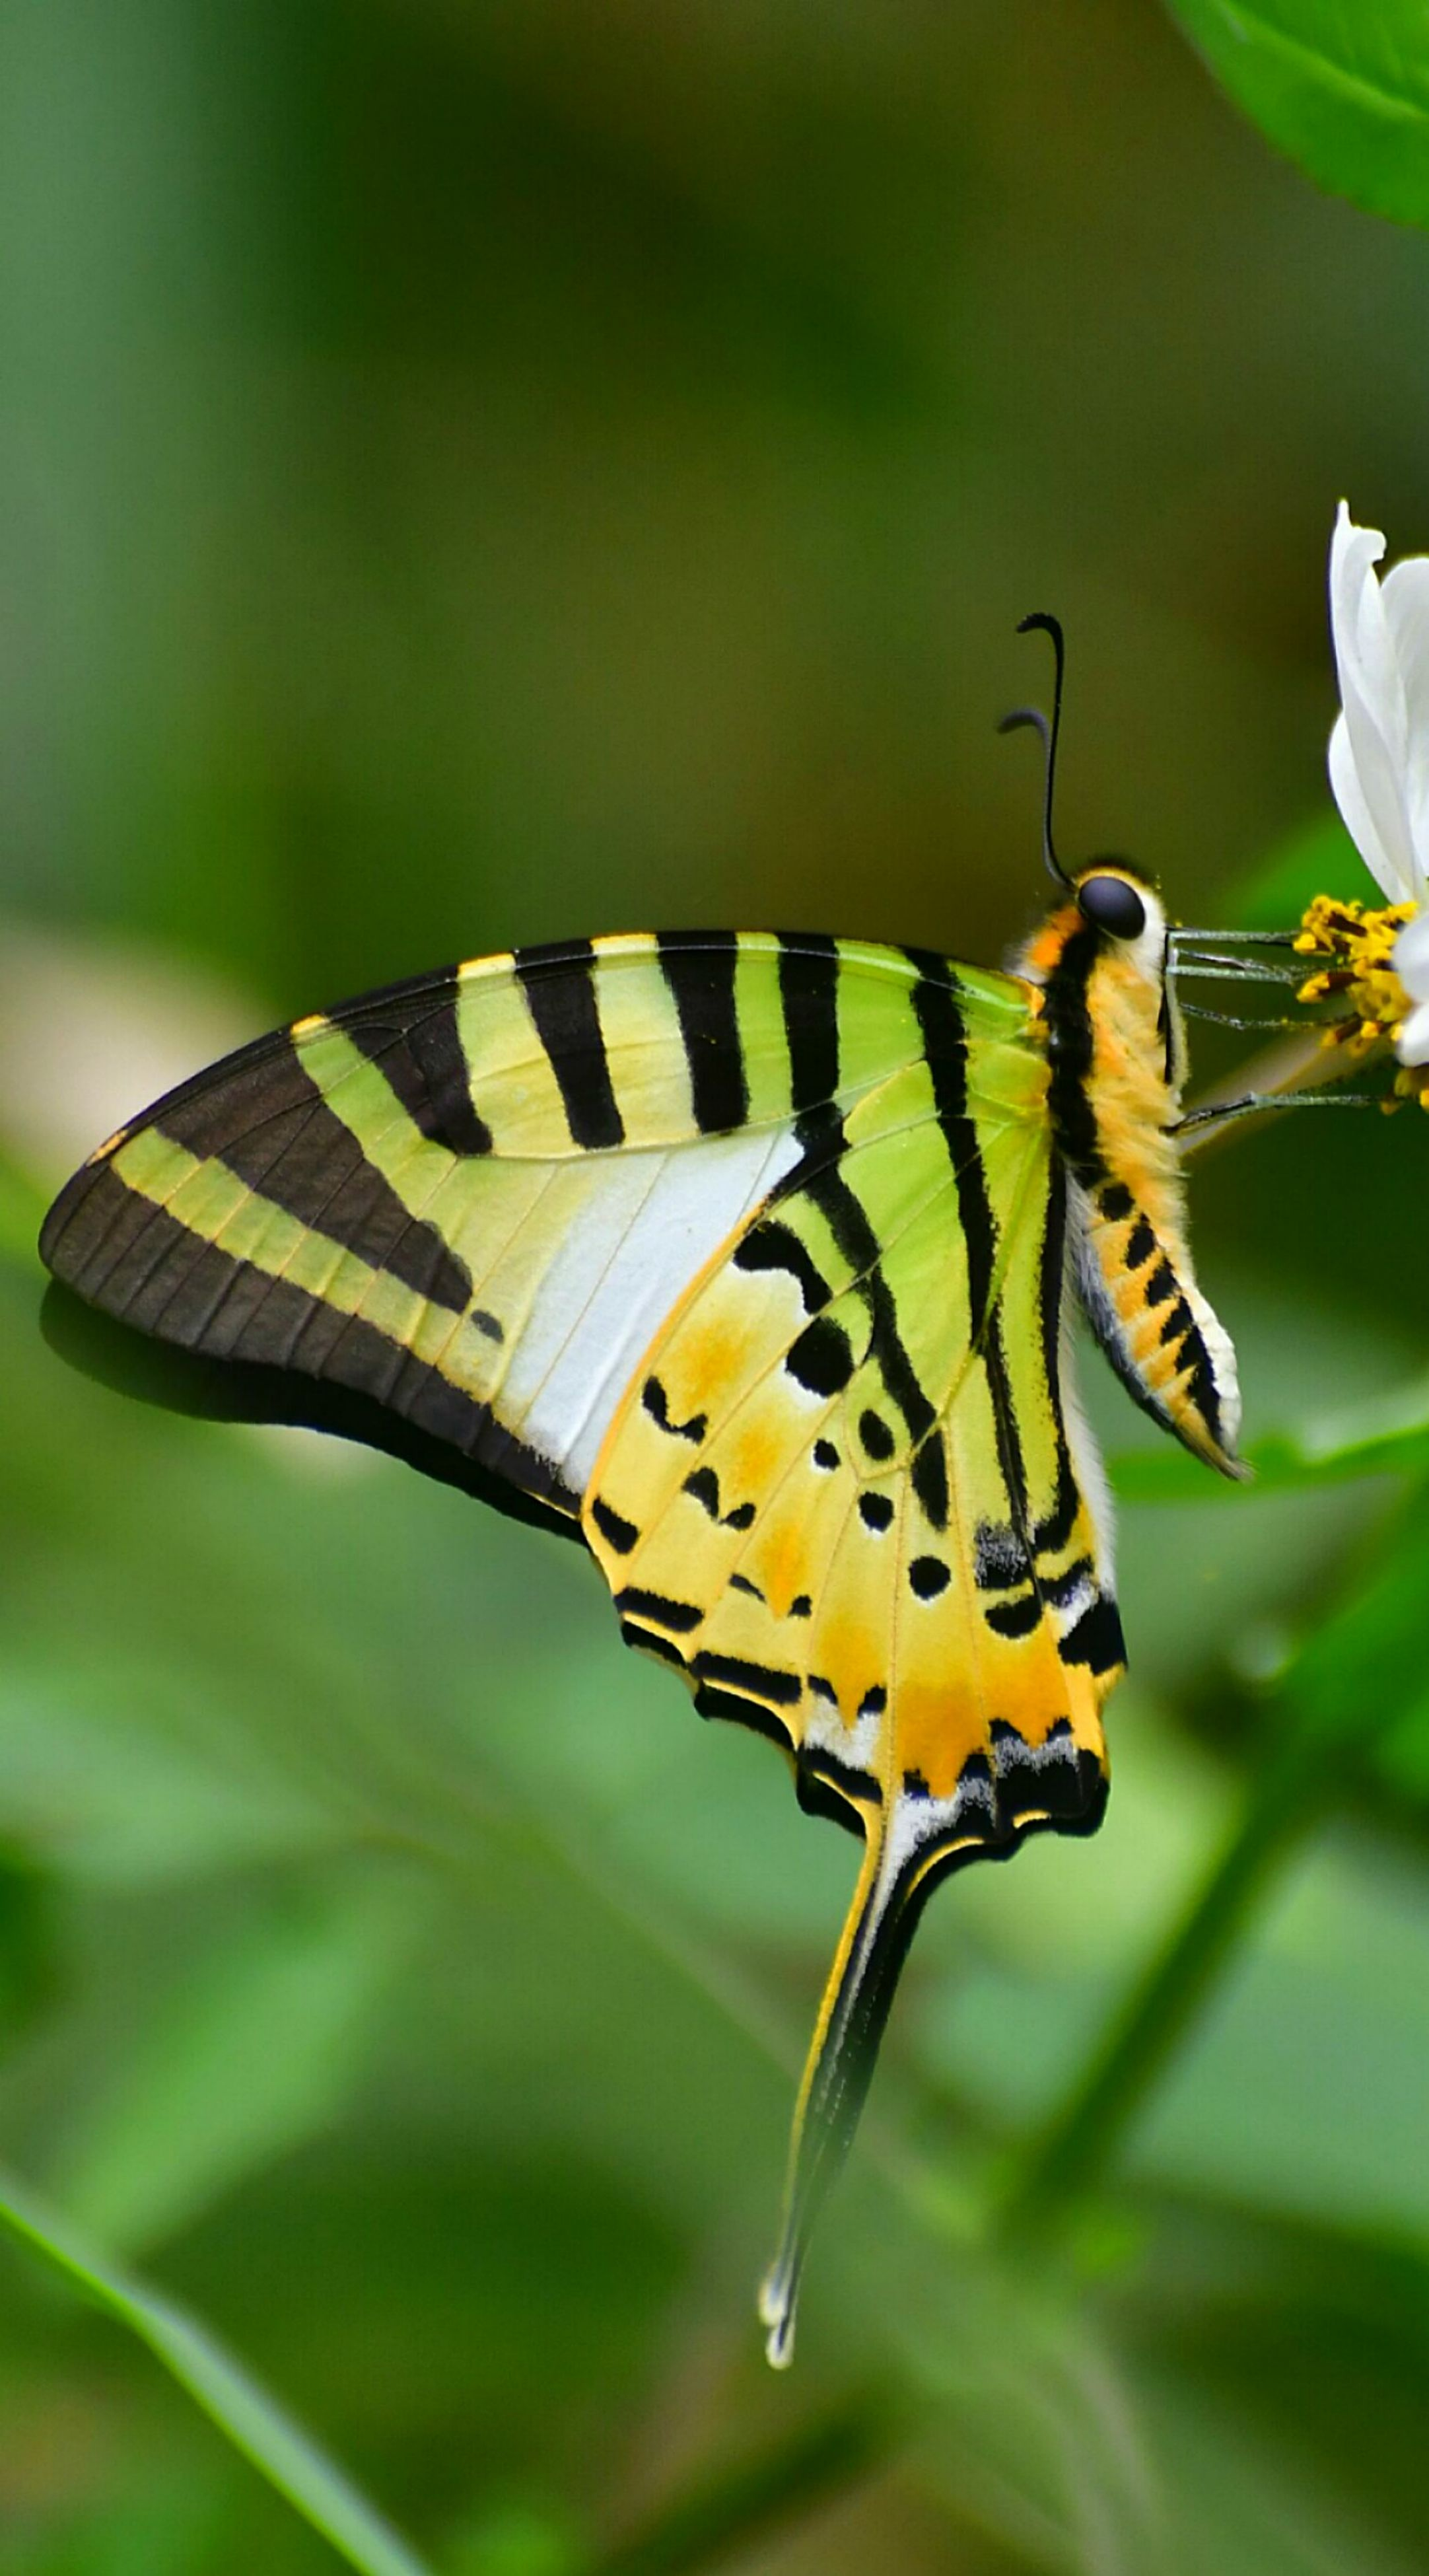 insect, animal themes, animals in the wild, one animal, butterfly - insect, nature, close-up, animal wildlife, no people, plant, beauty in nature, outdoors, day, pollination